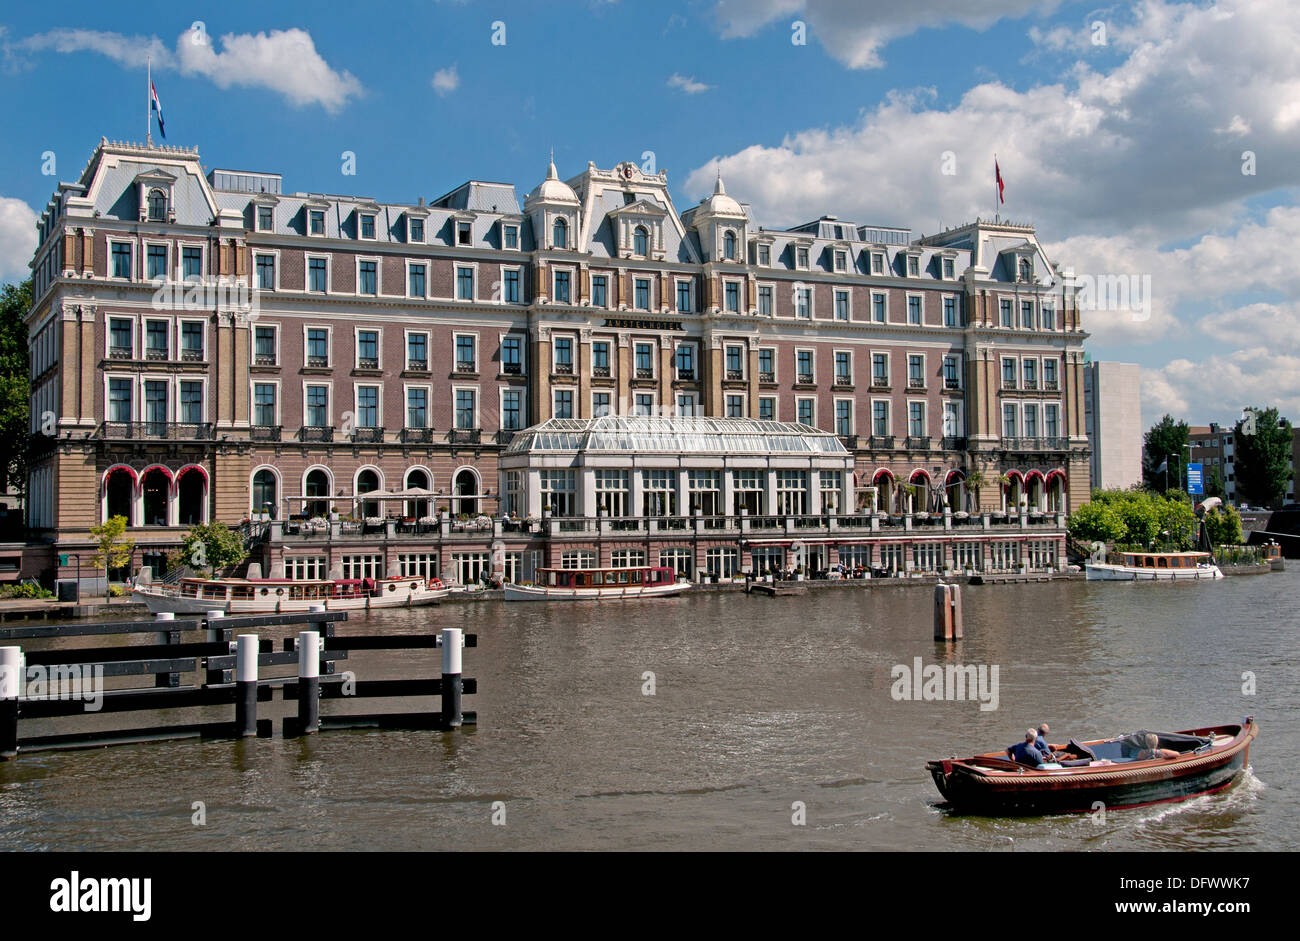 InterContinental Amstel on the Amstel Amsterdam Netherlands - Stock Image